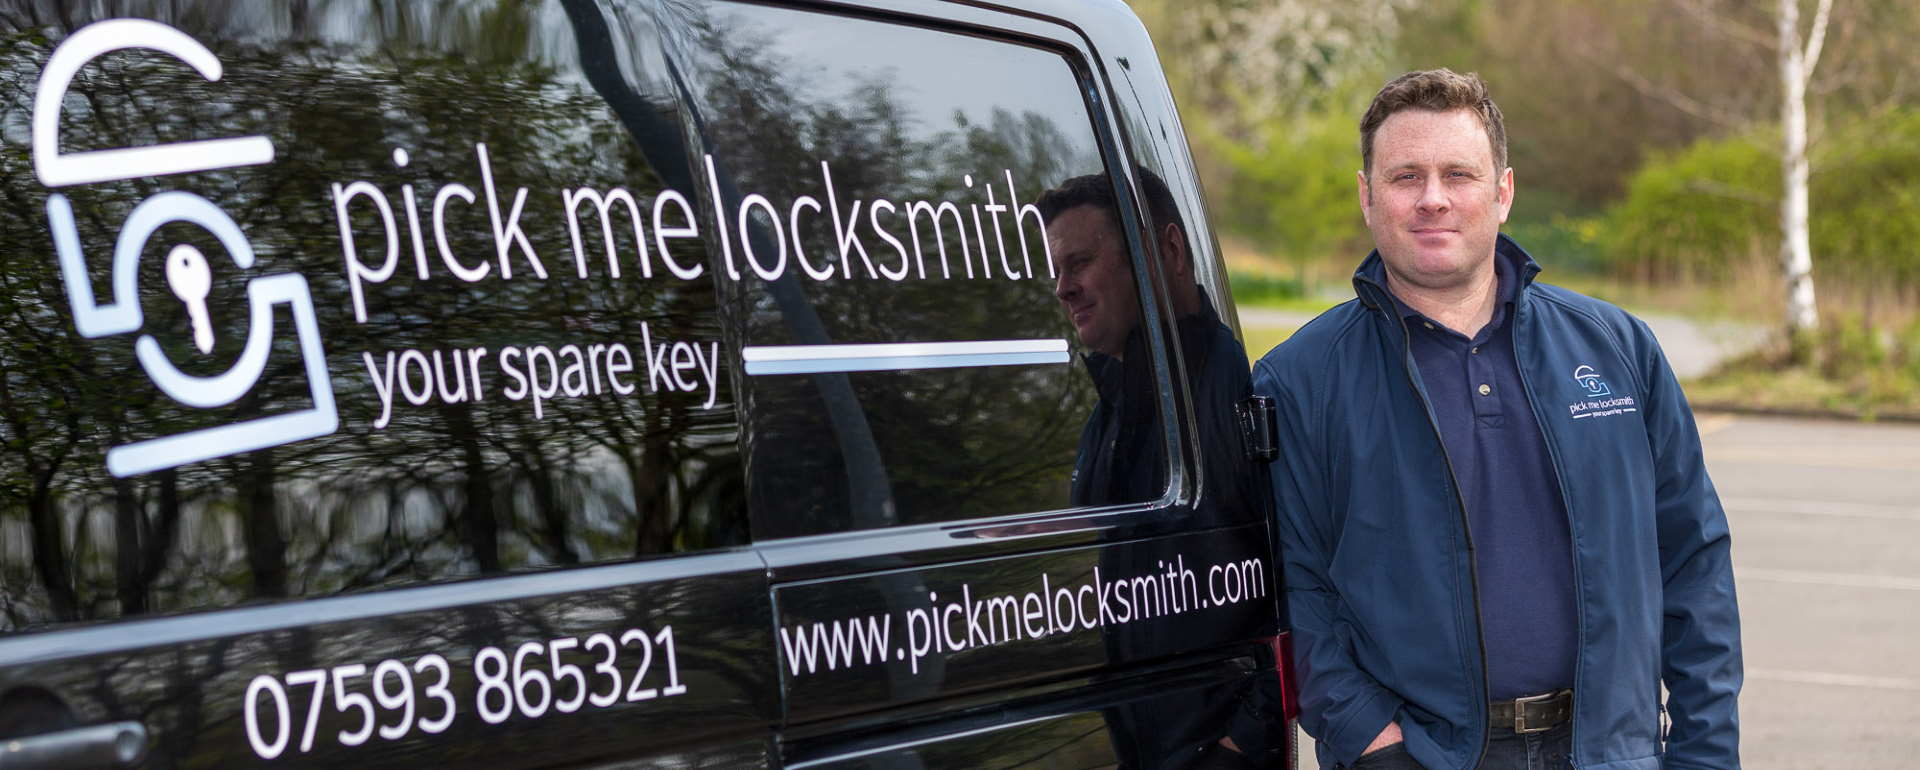 Locksmith Burton on Trent - Mark Santi Master Locksmith in Burton on Trent by his Locksmiths van